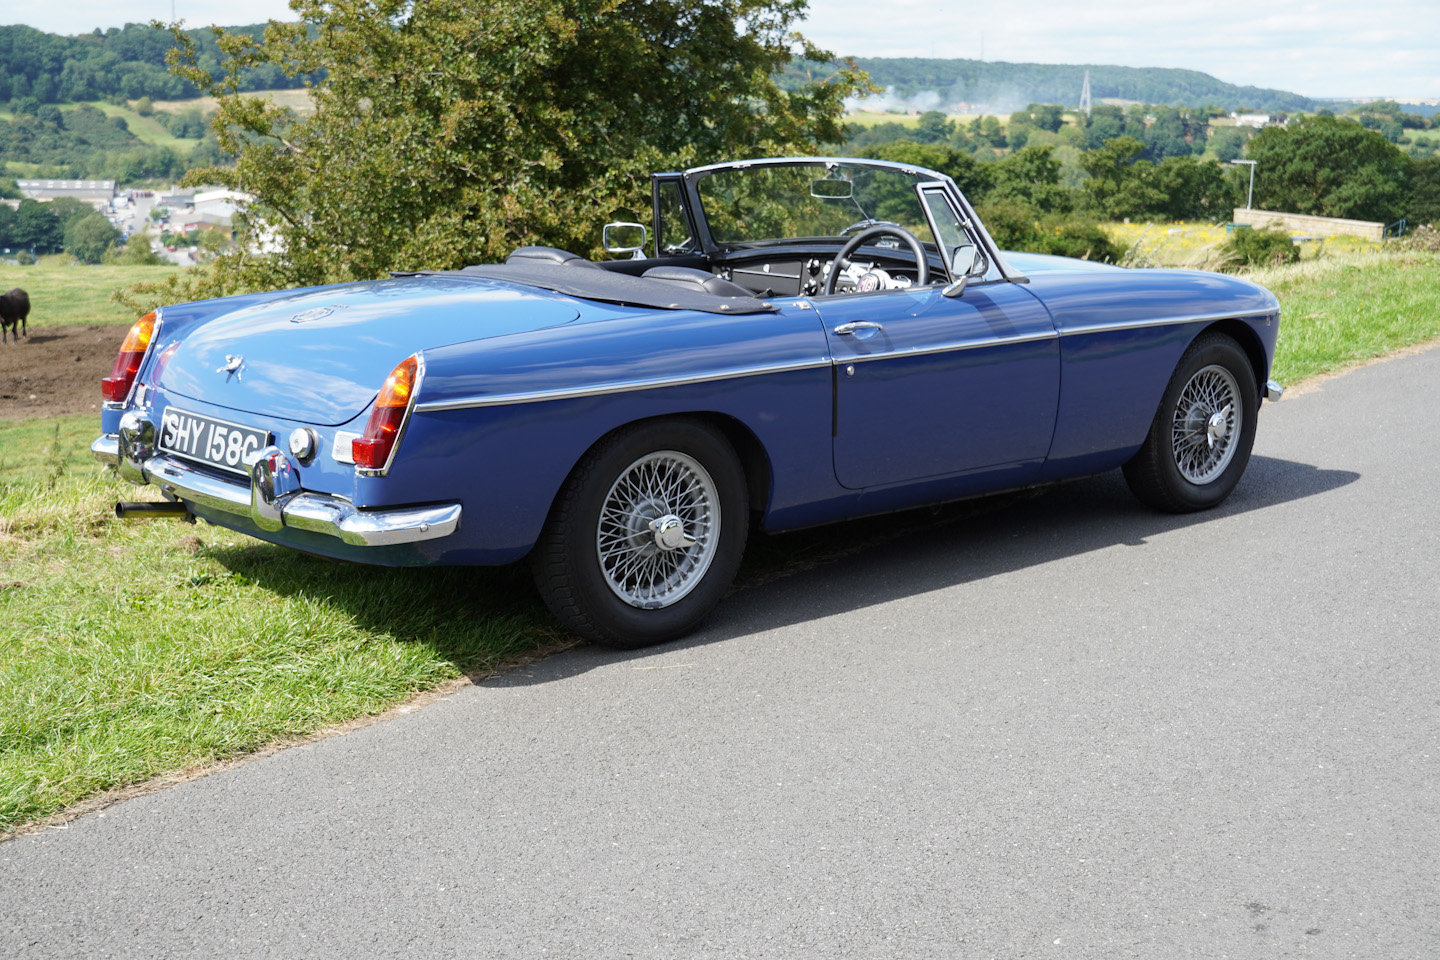 1968 MGB Roadster - Original UK Numbers Matching Car For Sale (picture 3 of 10)